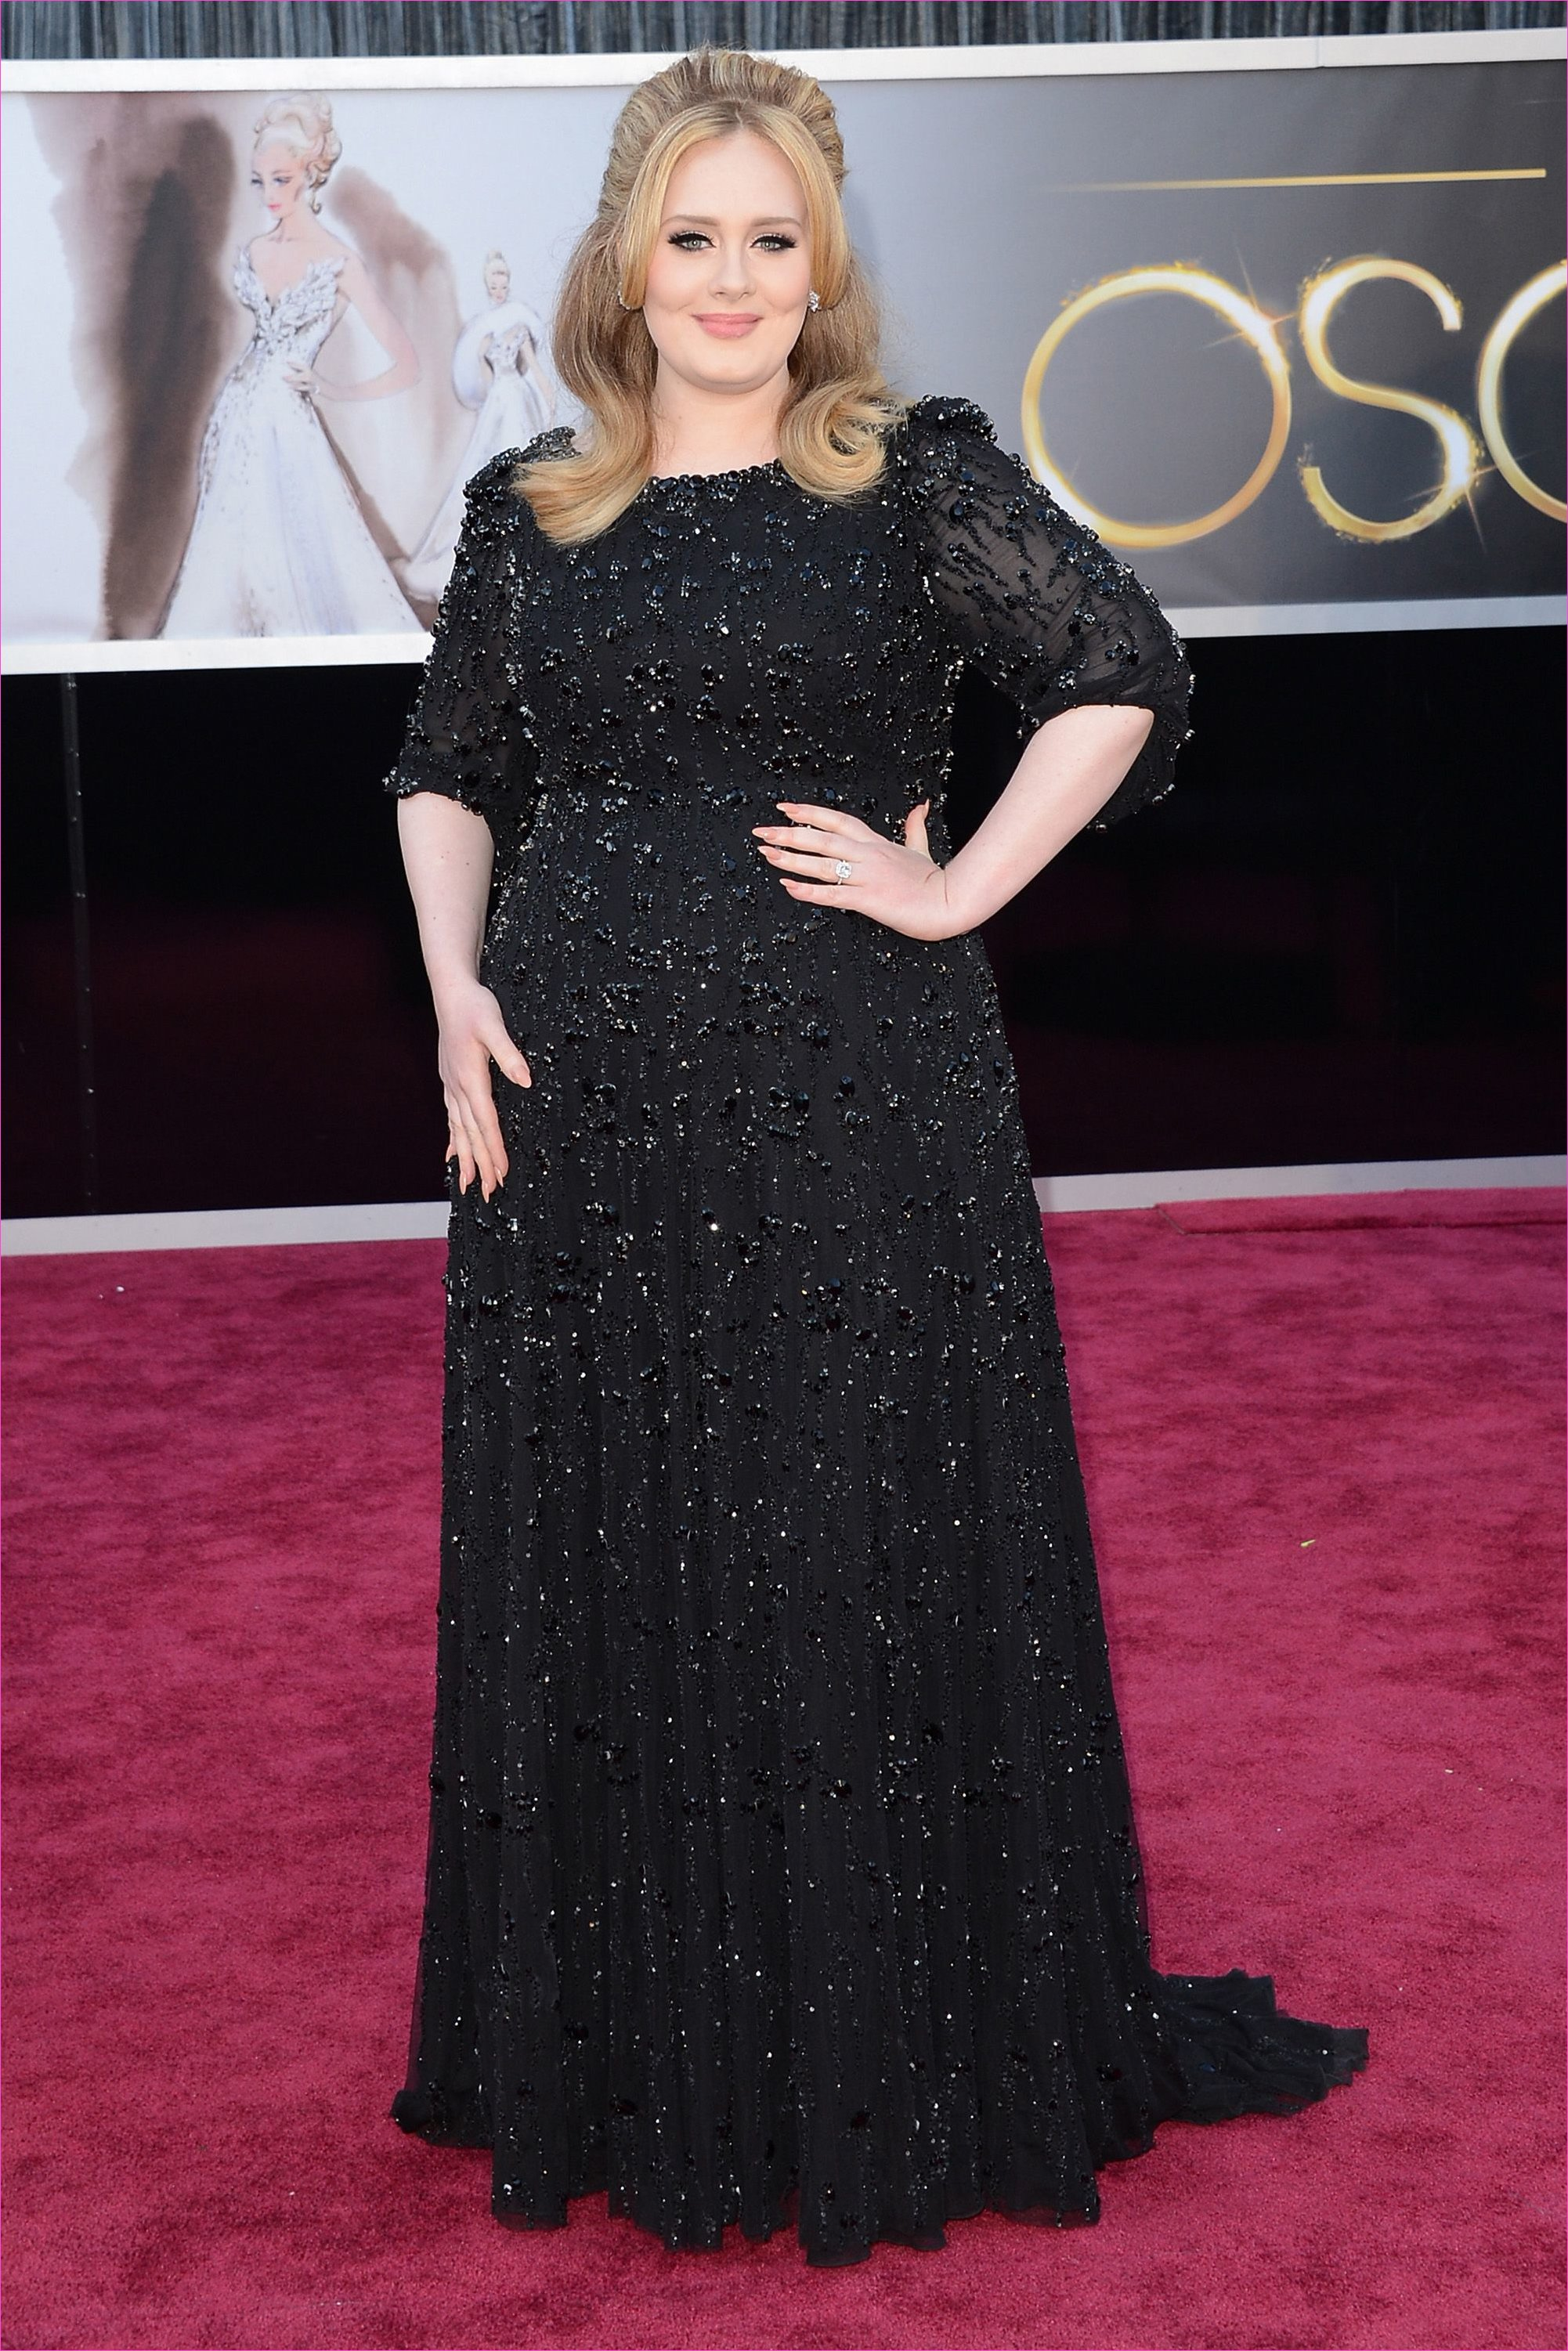 Adele's Red Carpet Evolution - Adele's Best Red Carpet Looks